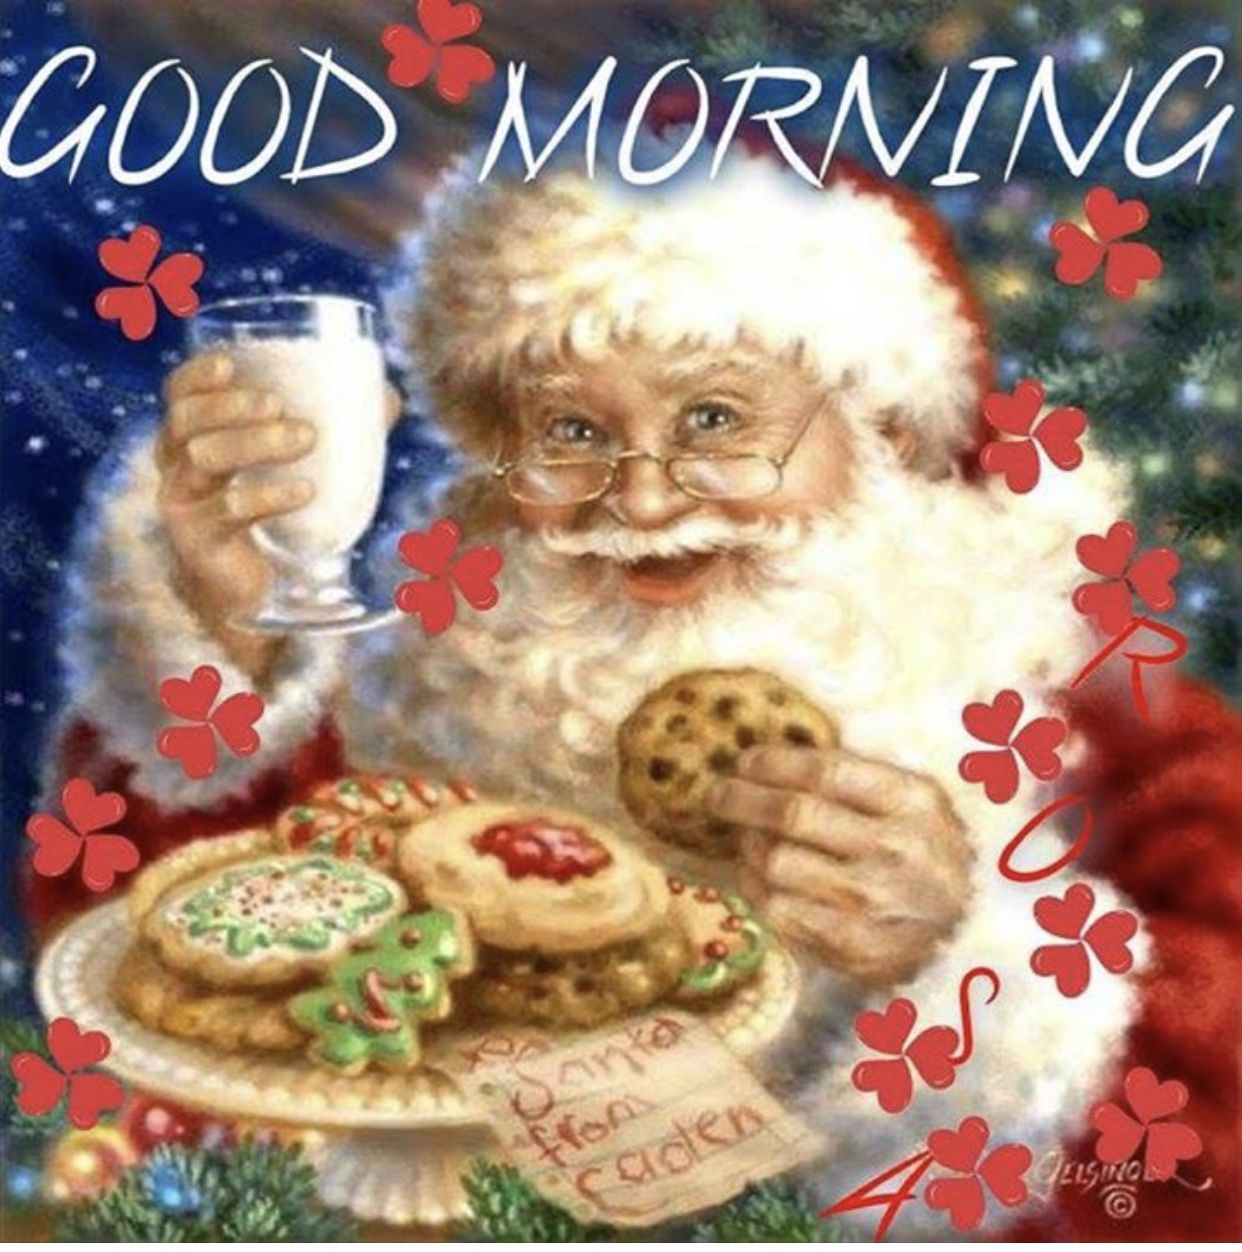 Pin by marlene russell henderson on days of the week pinterest christmas quotes for family holiday quote merry christmas quotes christmas greetings quote for friends good morning quotes christmas morning kristyandbryce Gallery